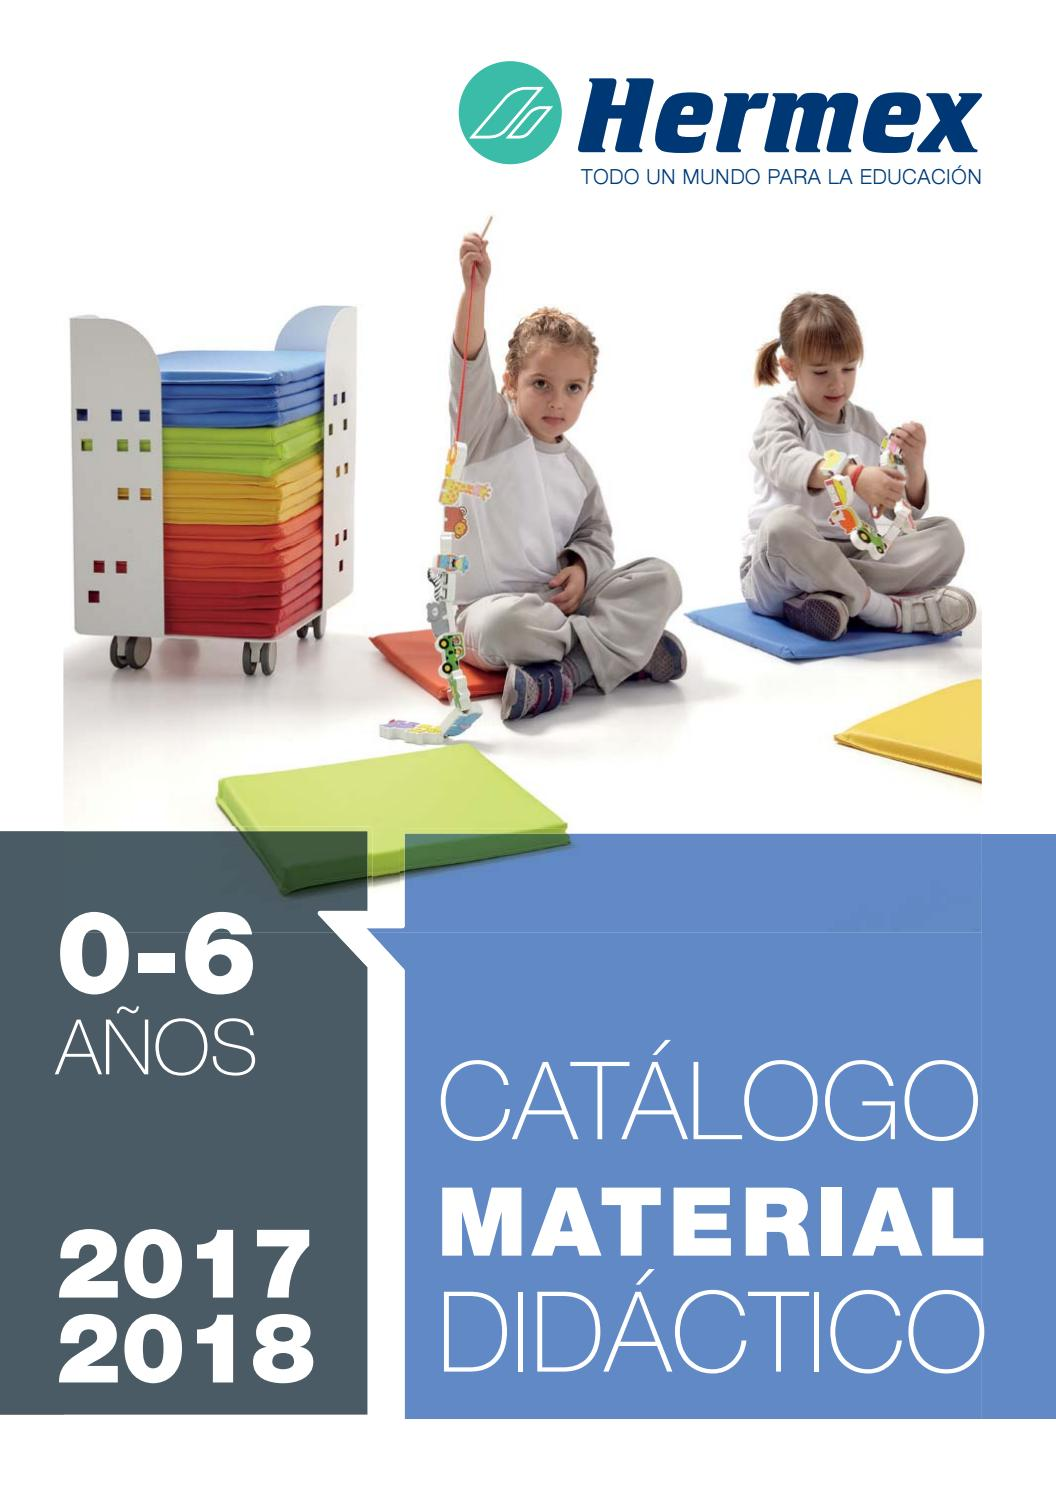 Material Didáctico 2017-2018 by Hermex - issuu